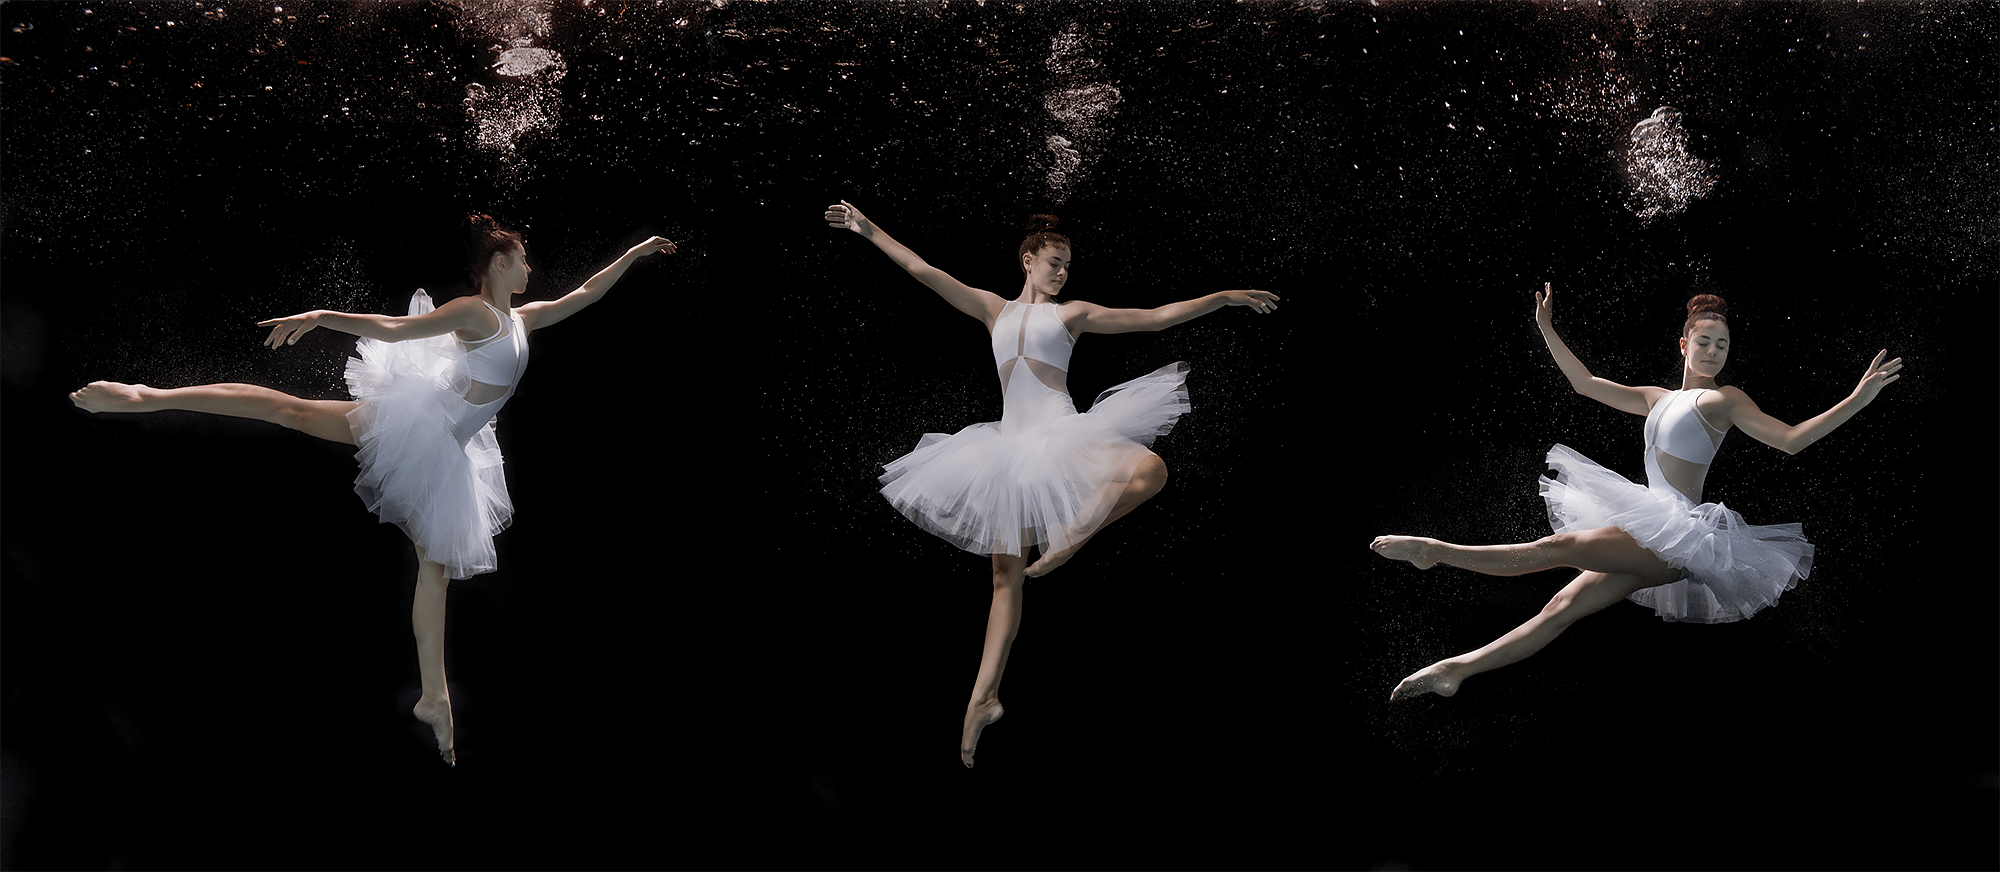 triptych of a ballet dancer dancing underwater, wearing a white tutu, black background, lots of bubbles